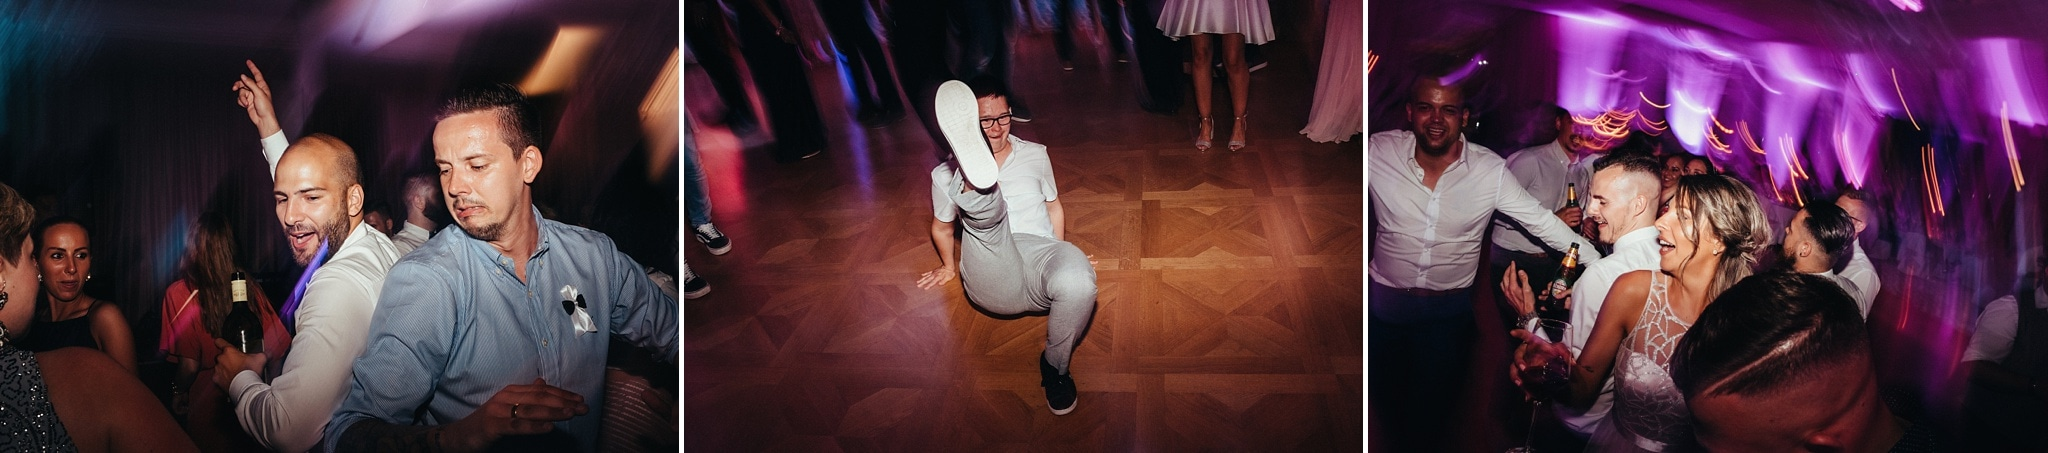 Moments of happines at wedding dancefloor